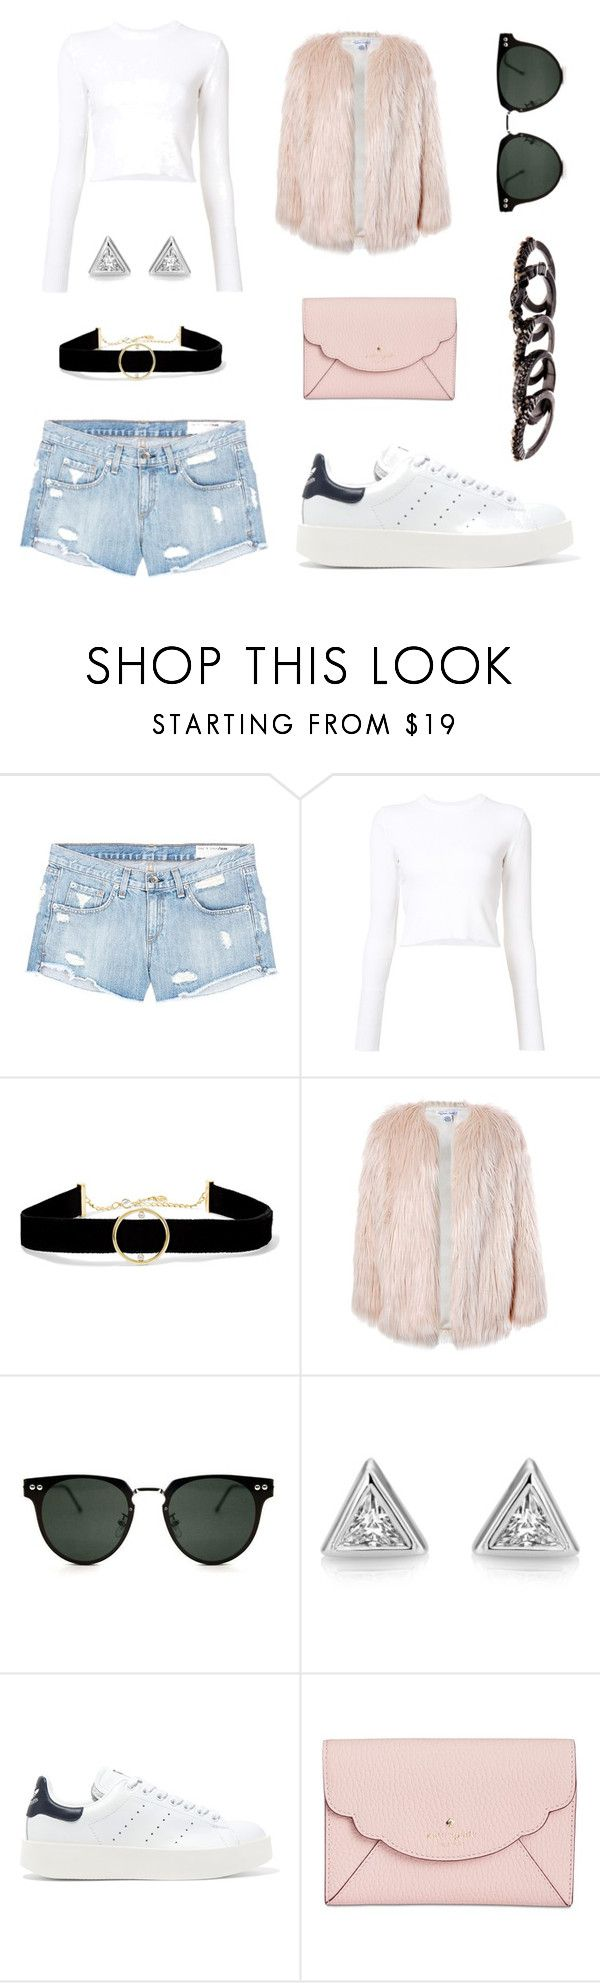 """OOTD"" by amariah-rose-love ❤ liked on Polyvore featuring rag & bone/JEAN, Proenza Schouler, Anissa Kermiche, Sans Souci, Spitfire, adidas Originals, Kate Spade and Free Press"